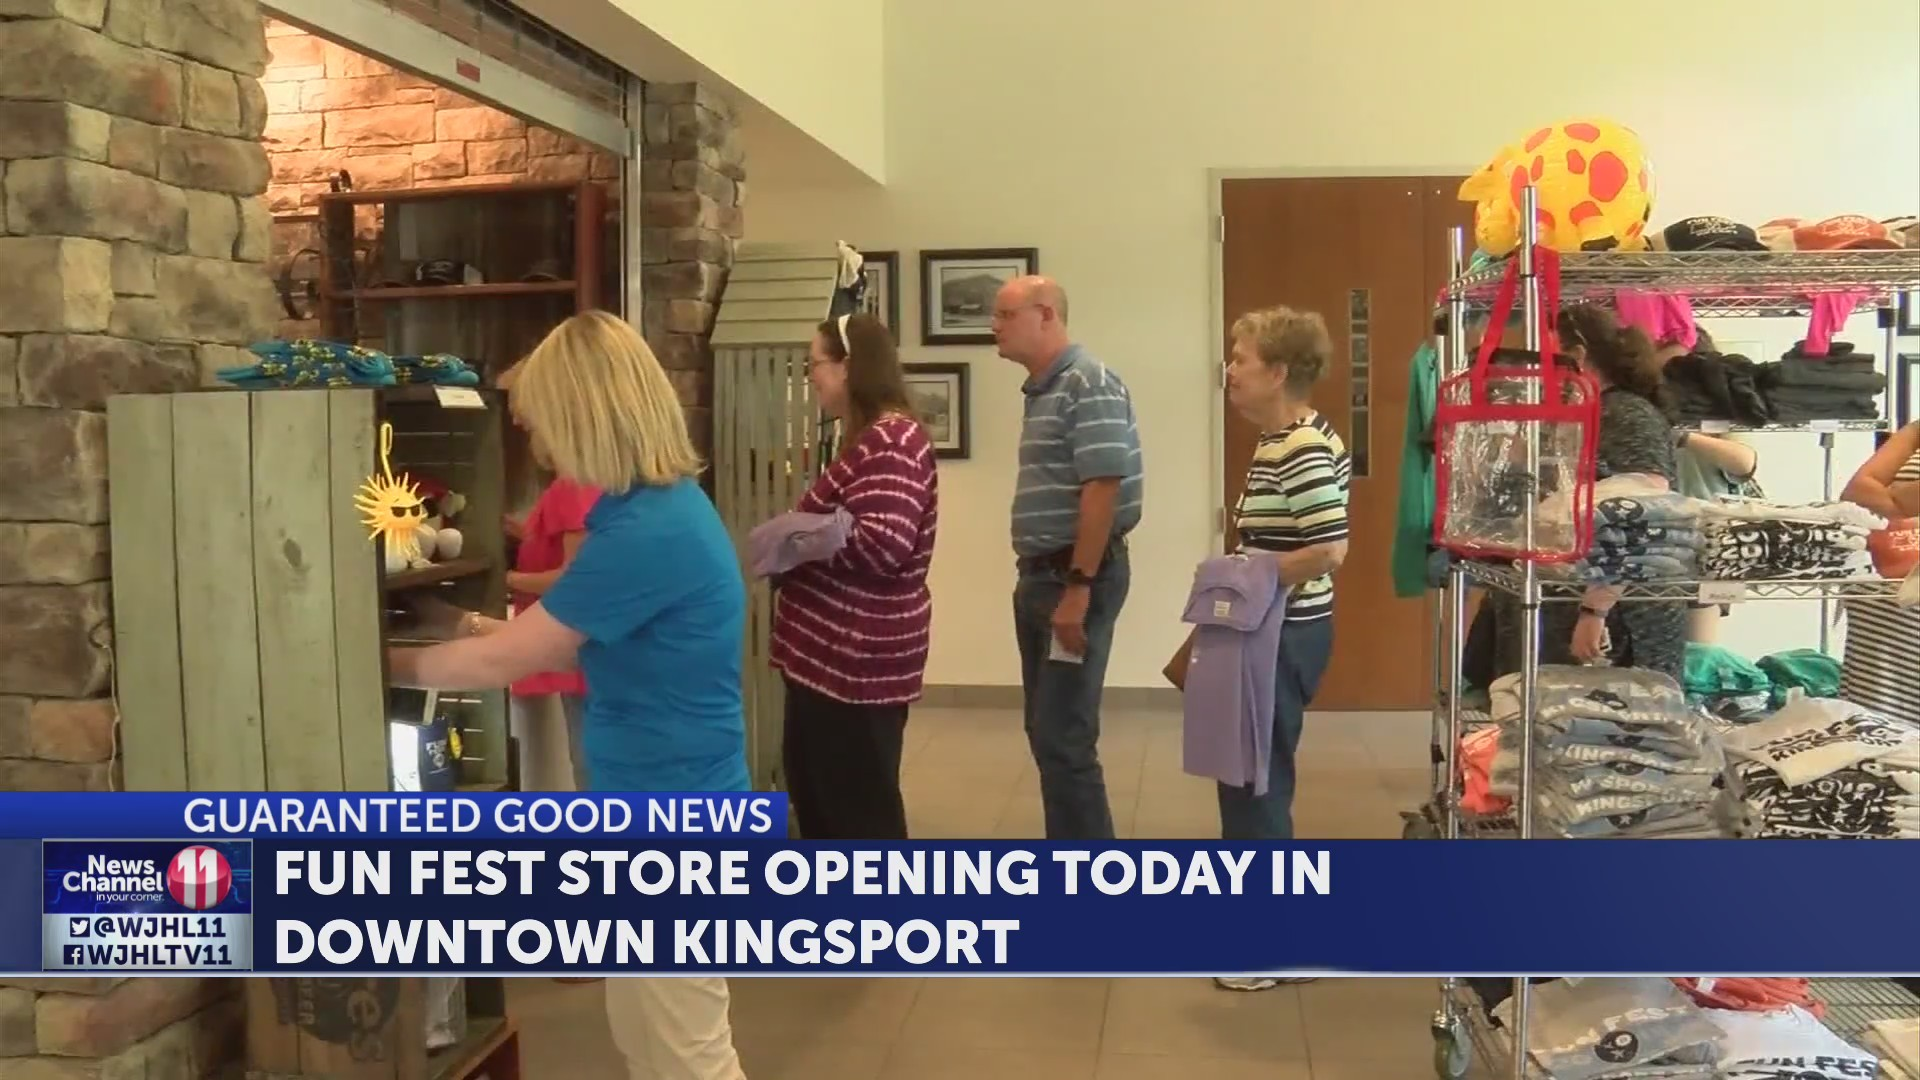 Fun Fest Store opening today in downtown Kingsport